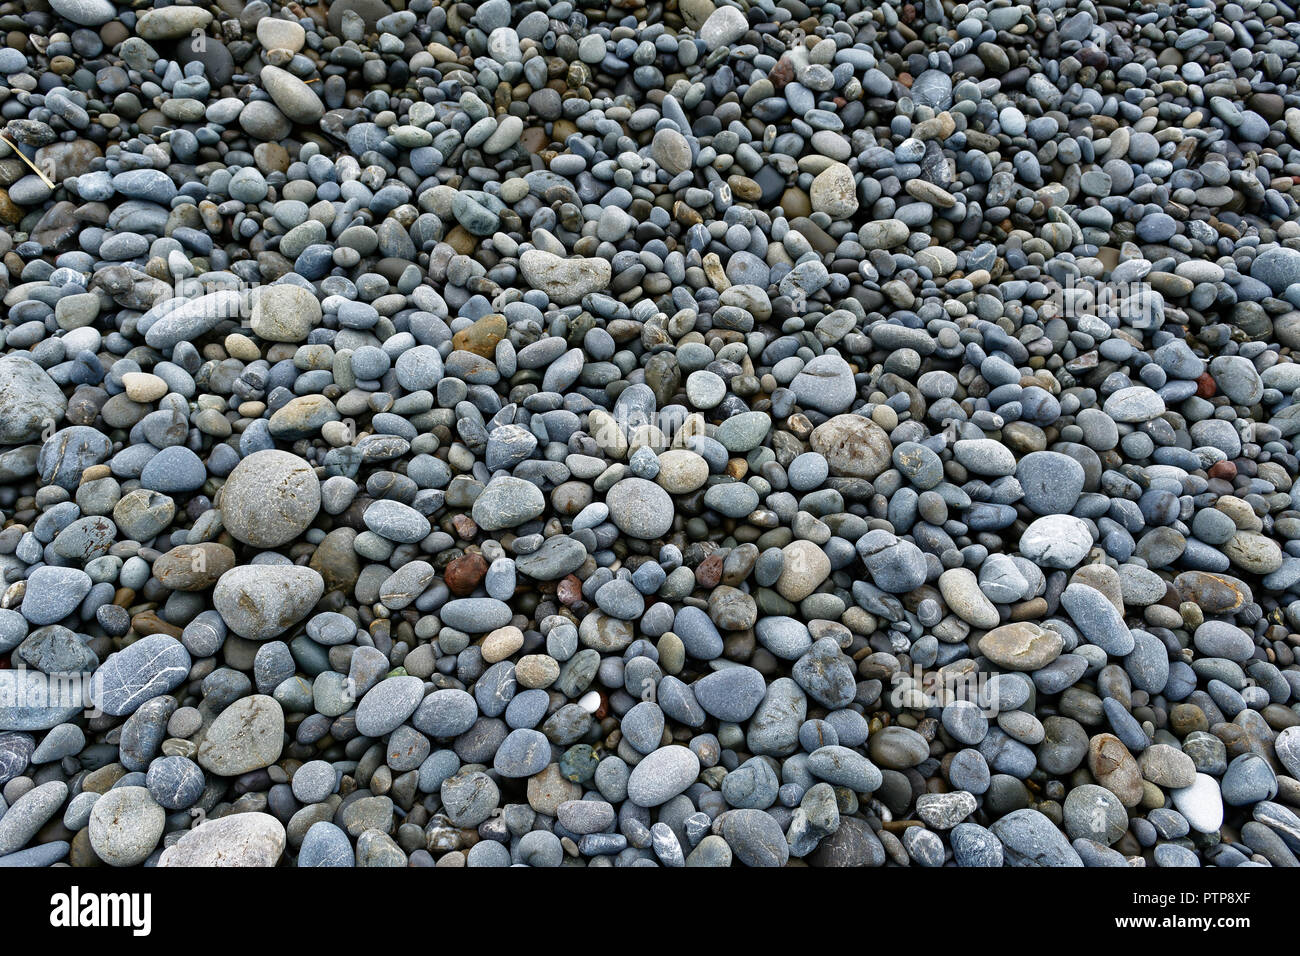 Pebbles of different colours and sizes on a stoney beach - Stock Image